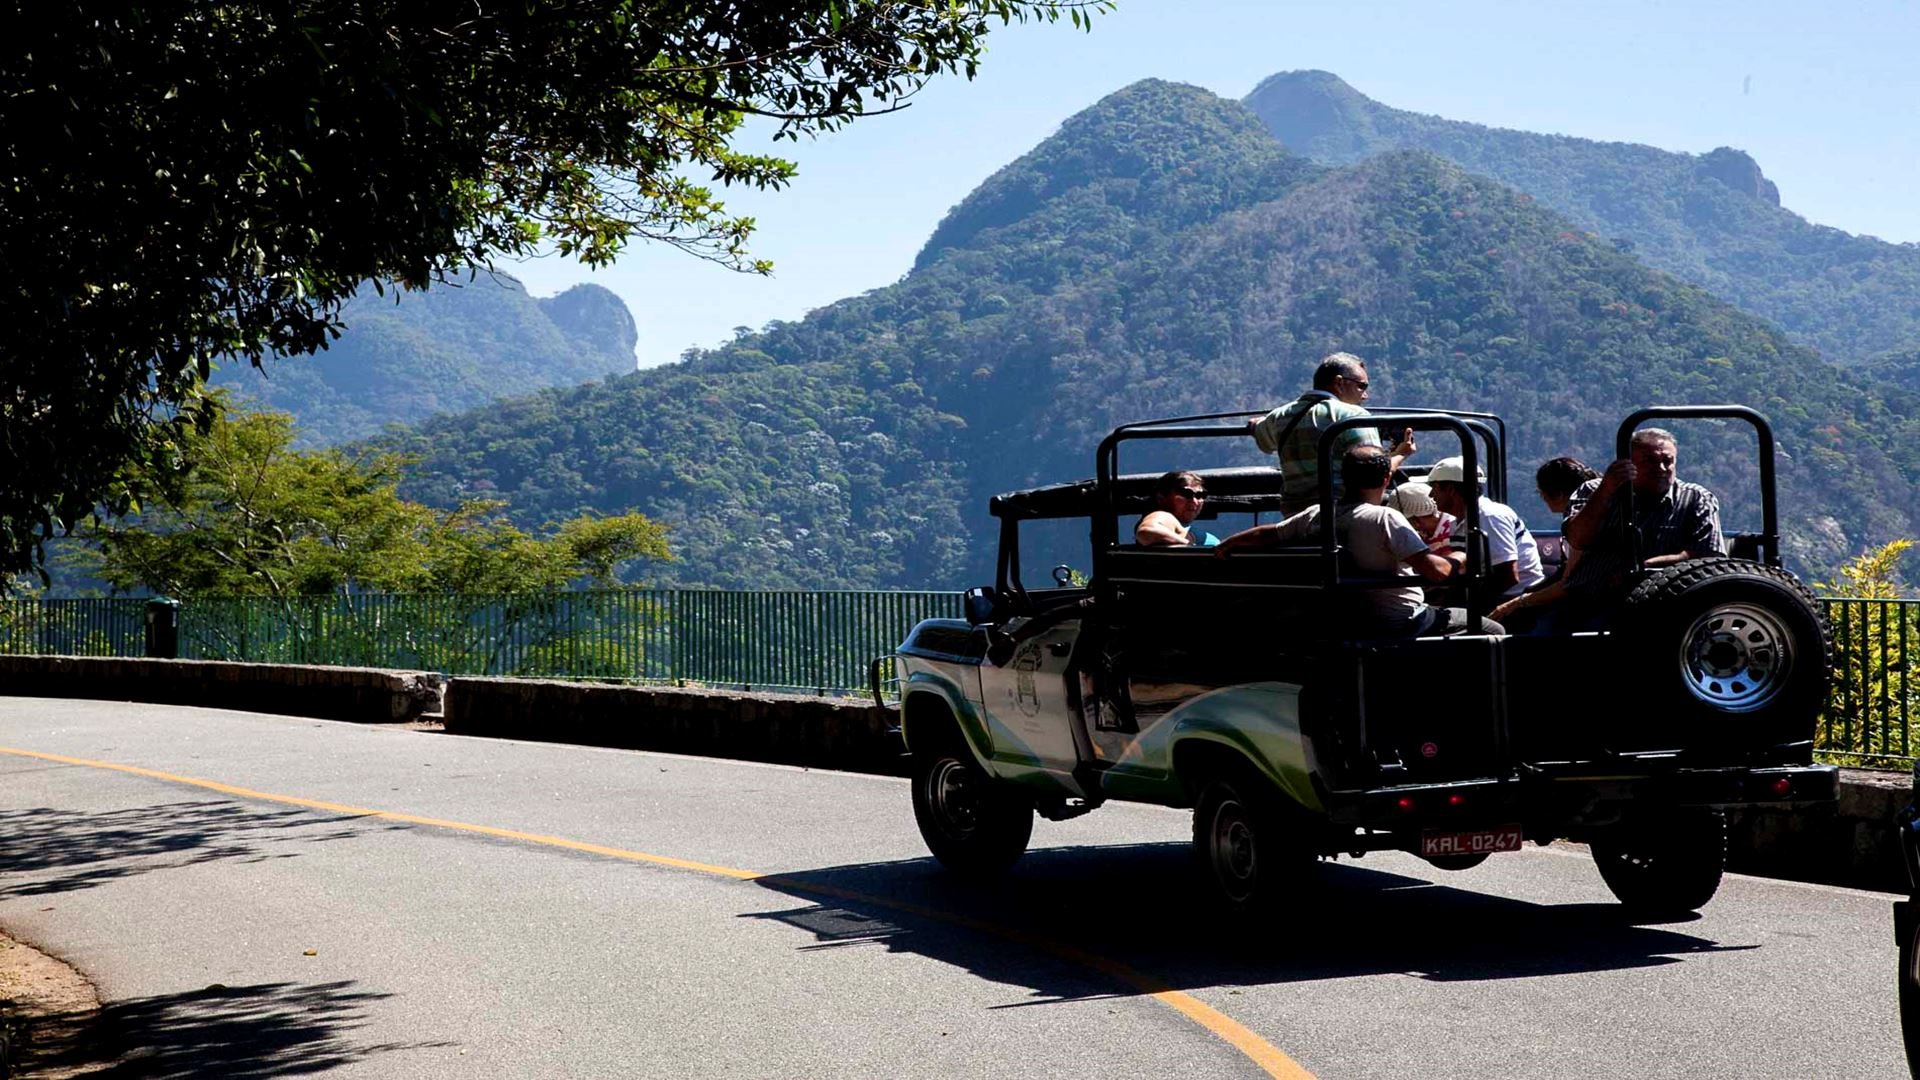 Jeep Tour Botanical Garden and Tijuca Rain Forest